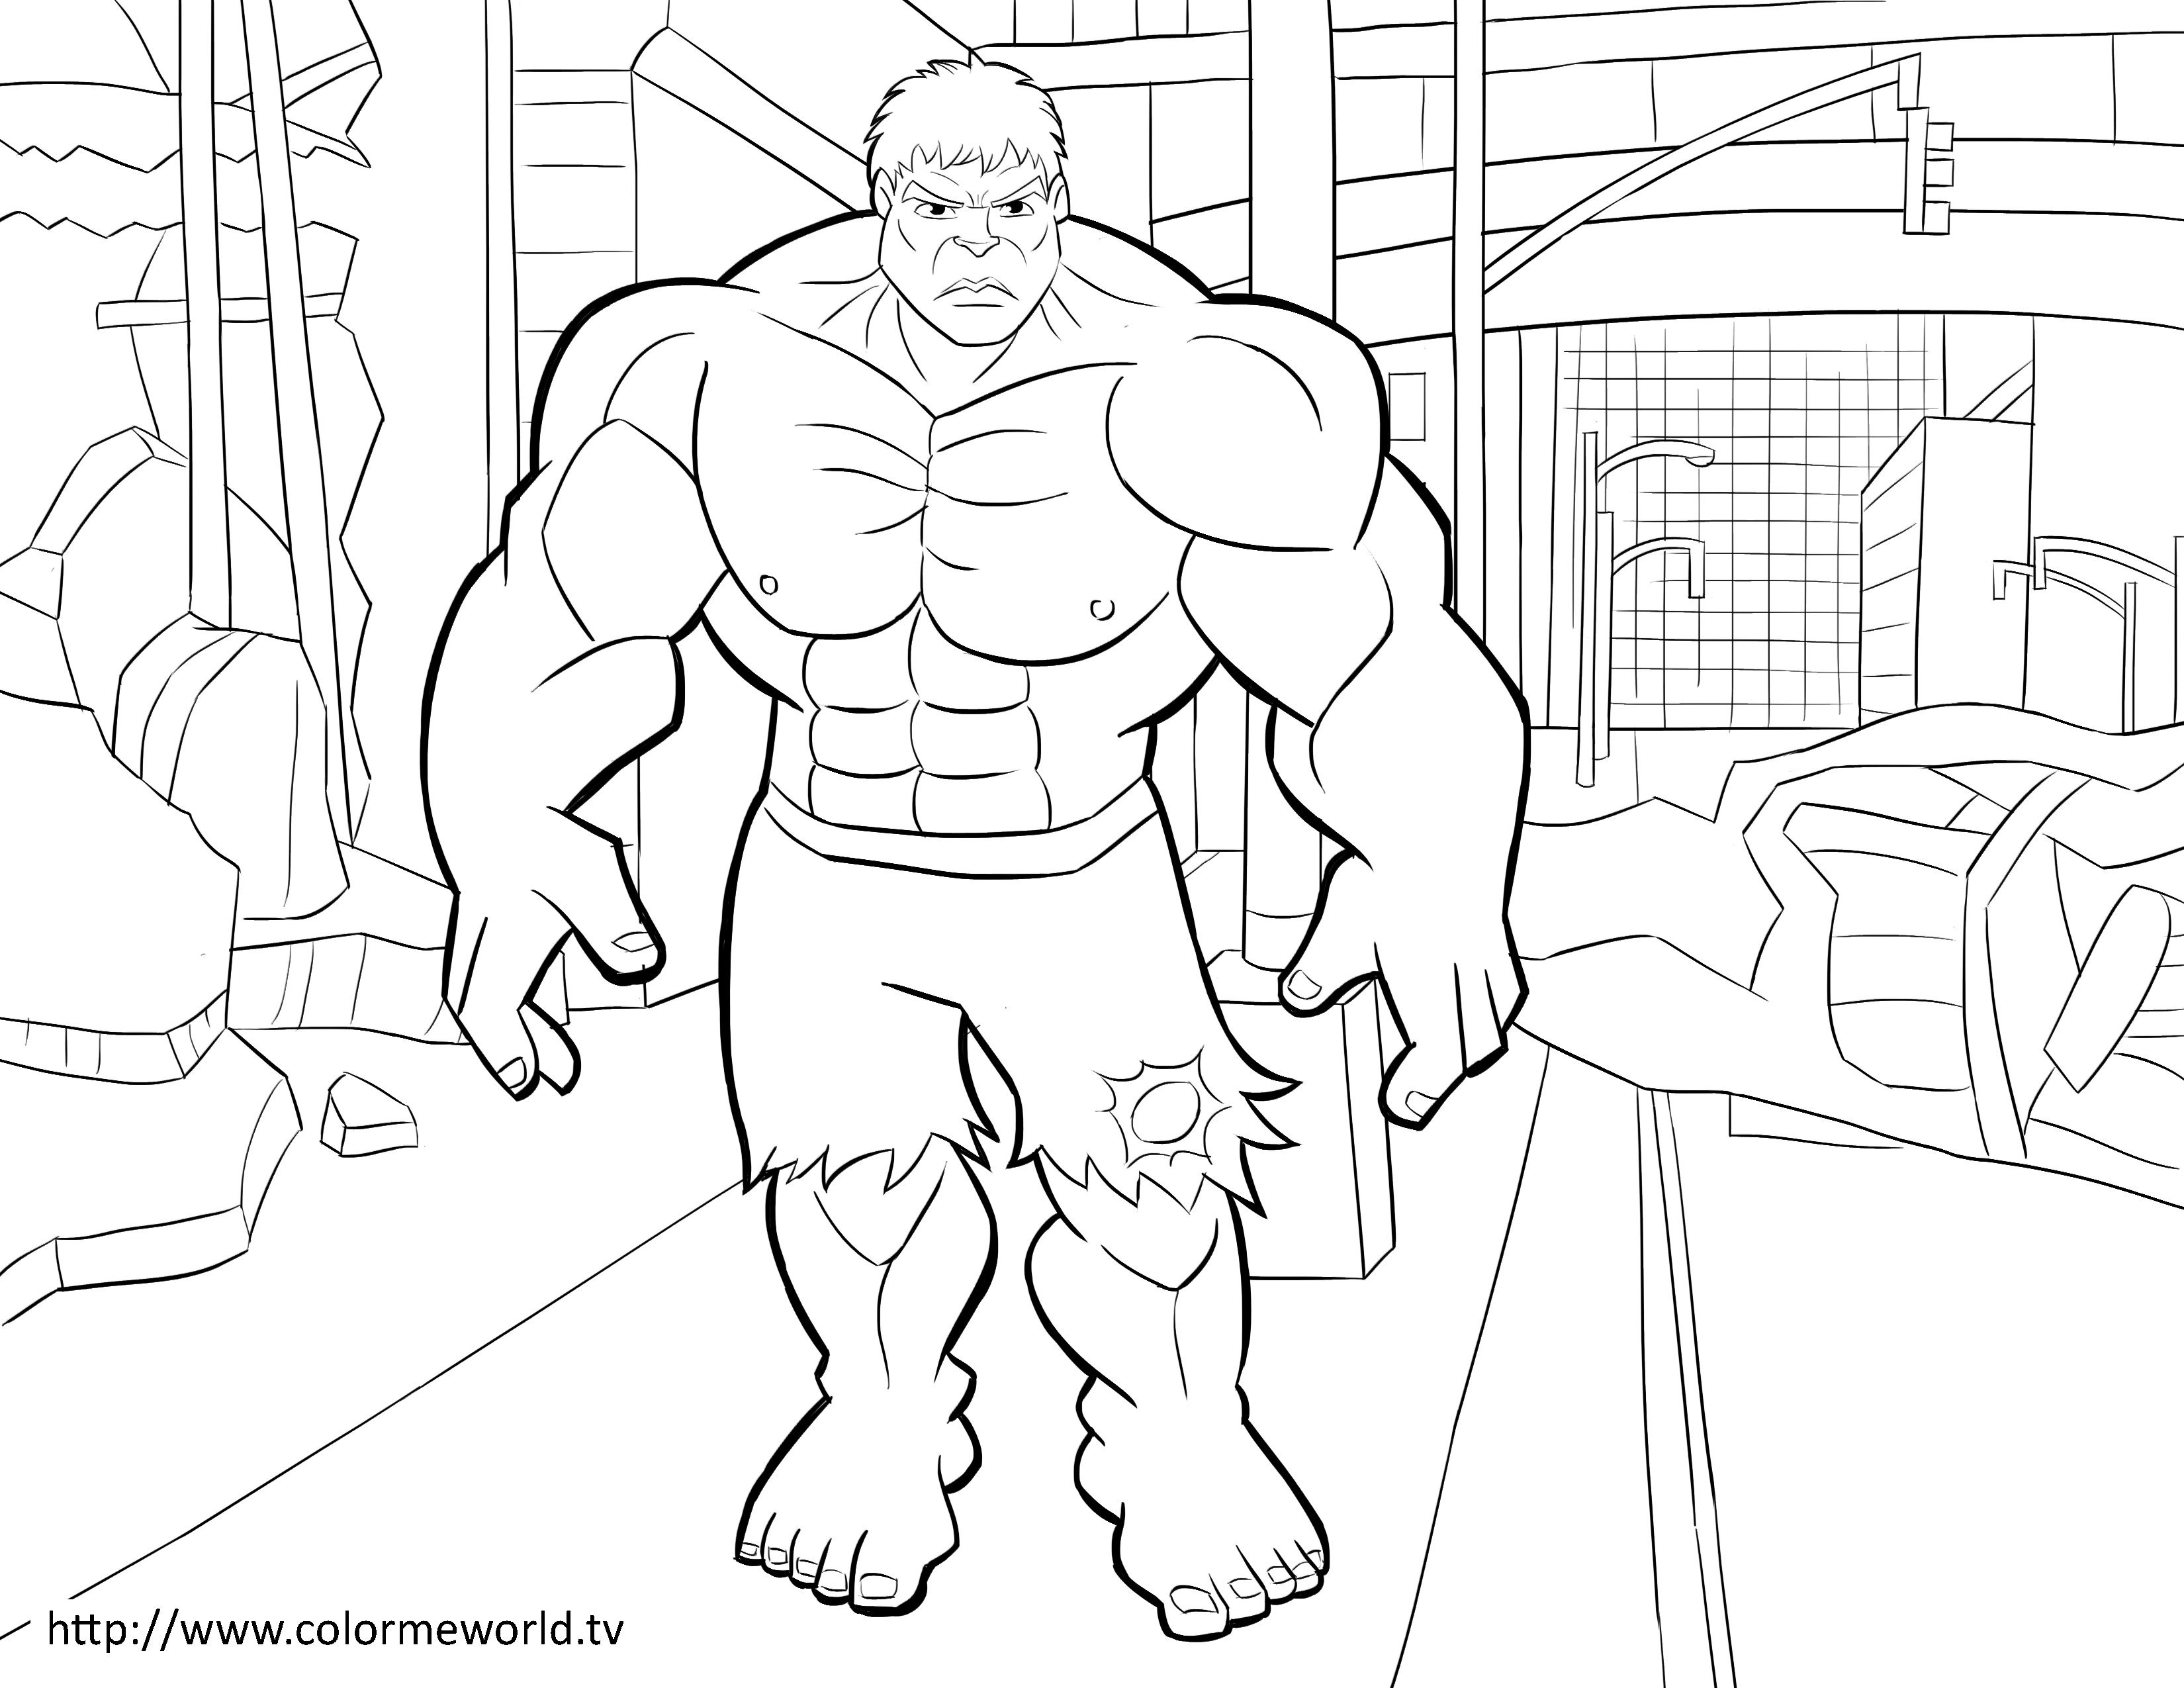 Marvel Coloring Pages : Free Printable Marvel Pdf Coloring Sheets - Free Printable Superhero Coloring Pages Pdf